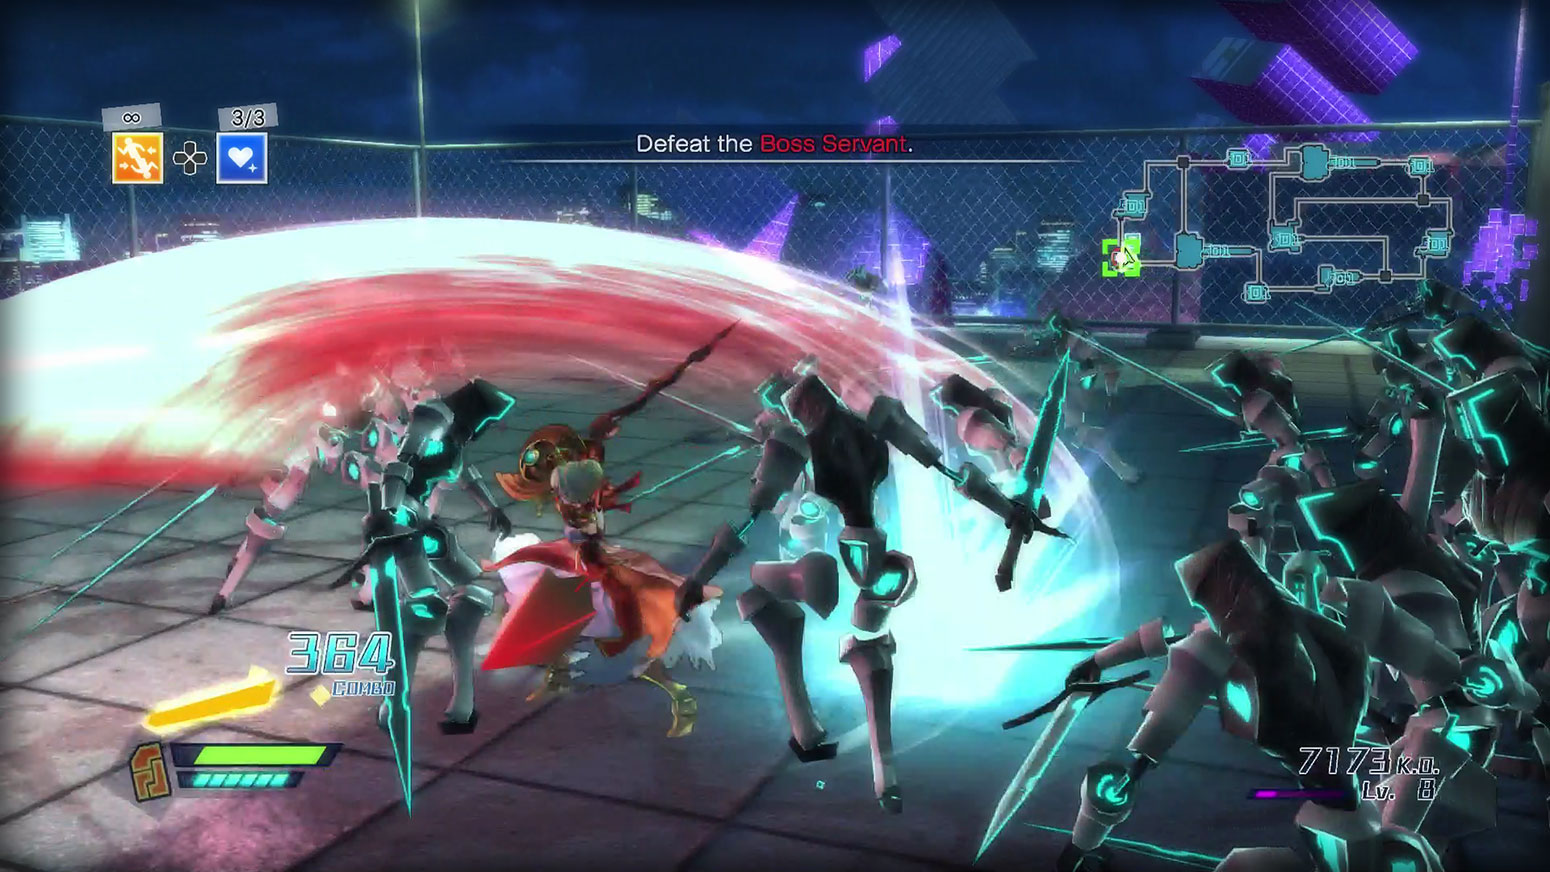 Fate/EXTELLA: The Umbral Star - High Speed Servant Action Screenshot 4